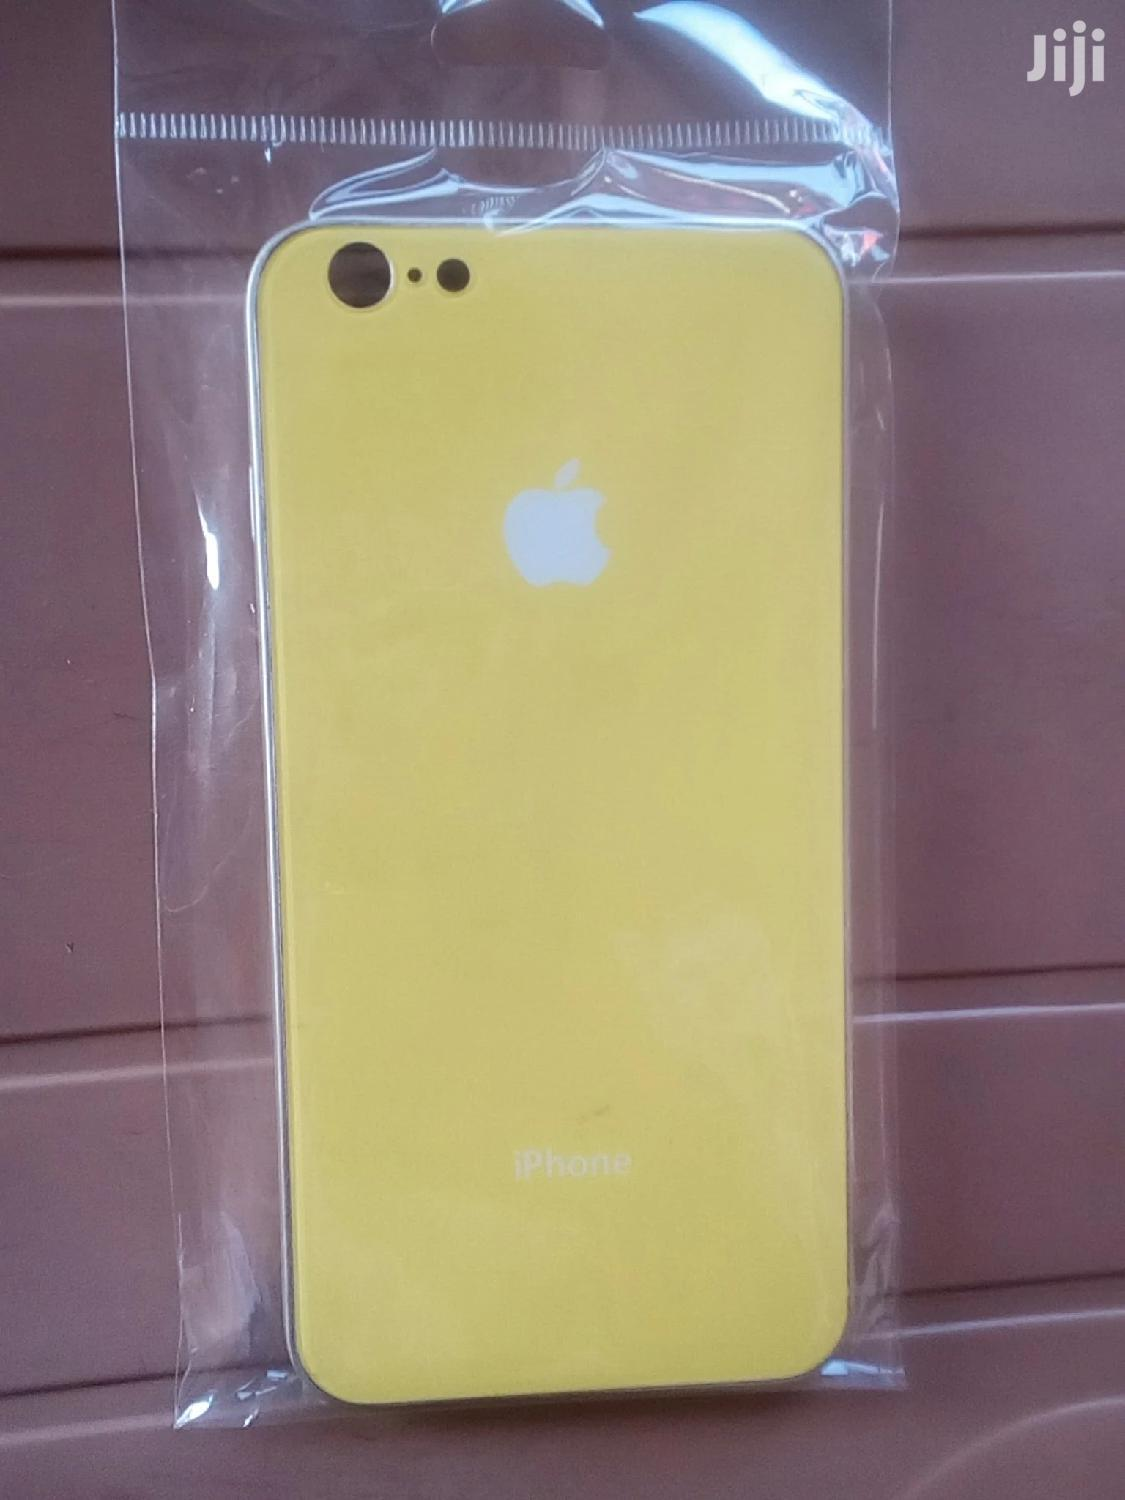 iPhone 6 Plus Case Or Cover | Accessories for Mobile Phones & Tablets for sale in Accra new Town, Greater Accra, Ghana